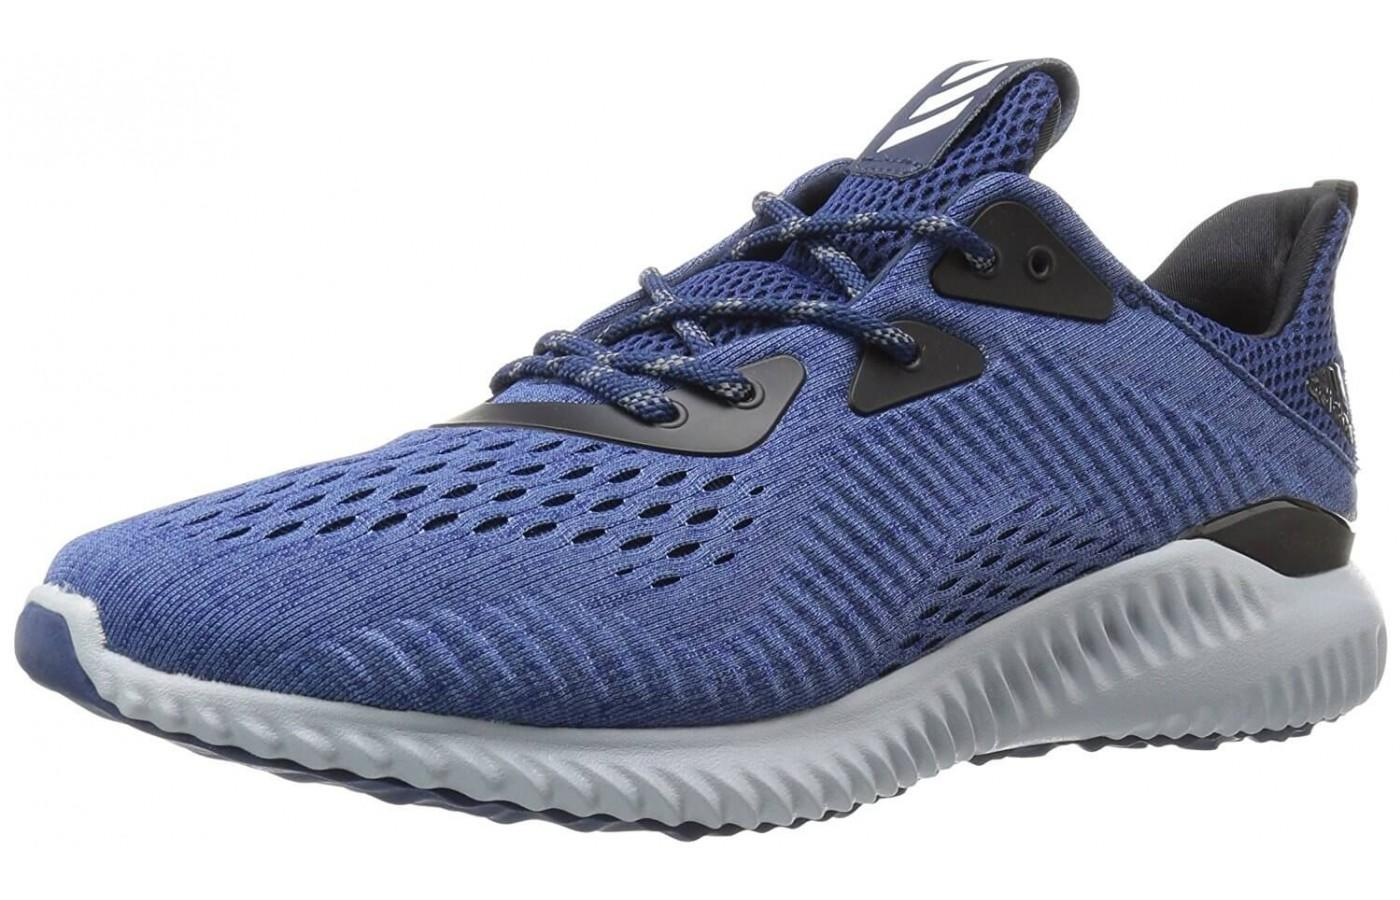 3e096e9f5 The Adidas Alphabounce EM features Bounce cushioning ...